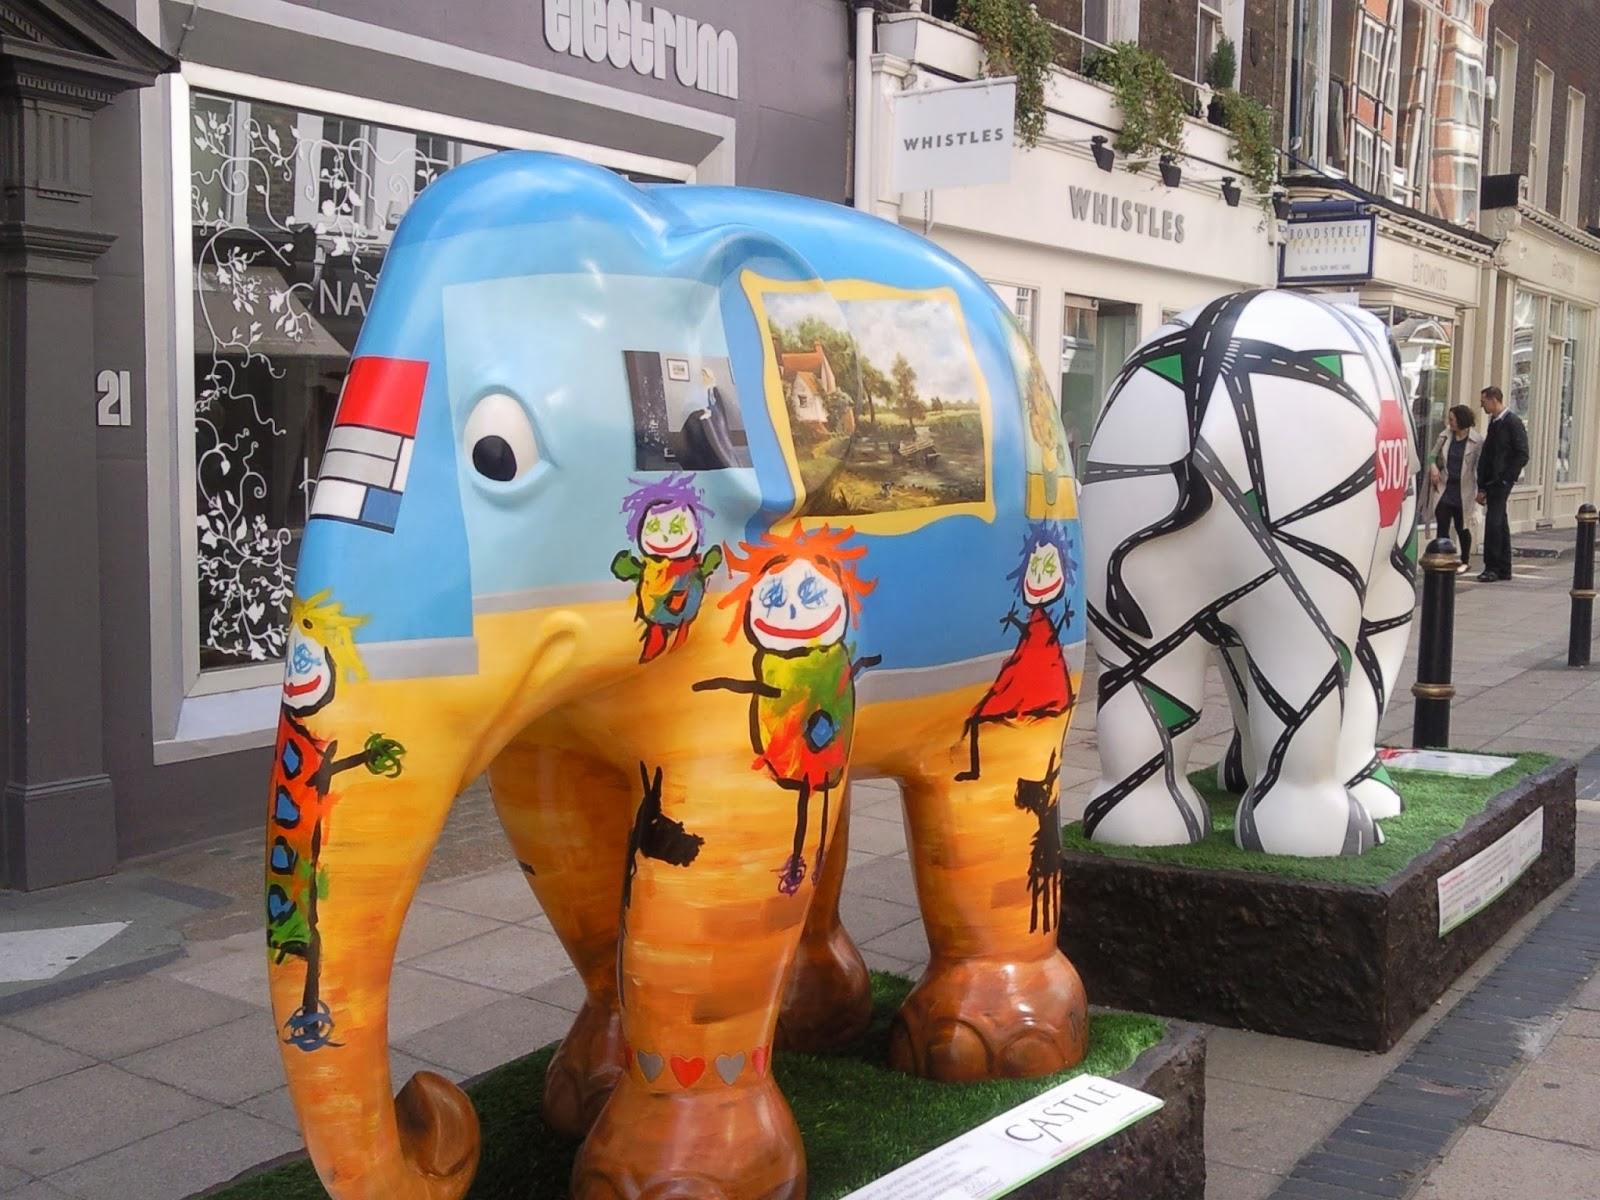 Elephants in South Molton Street